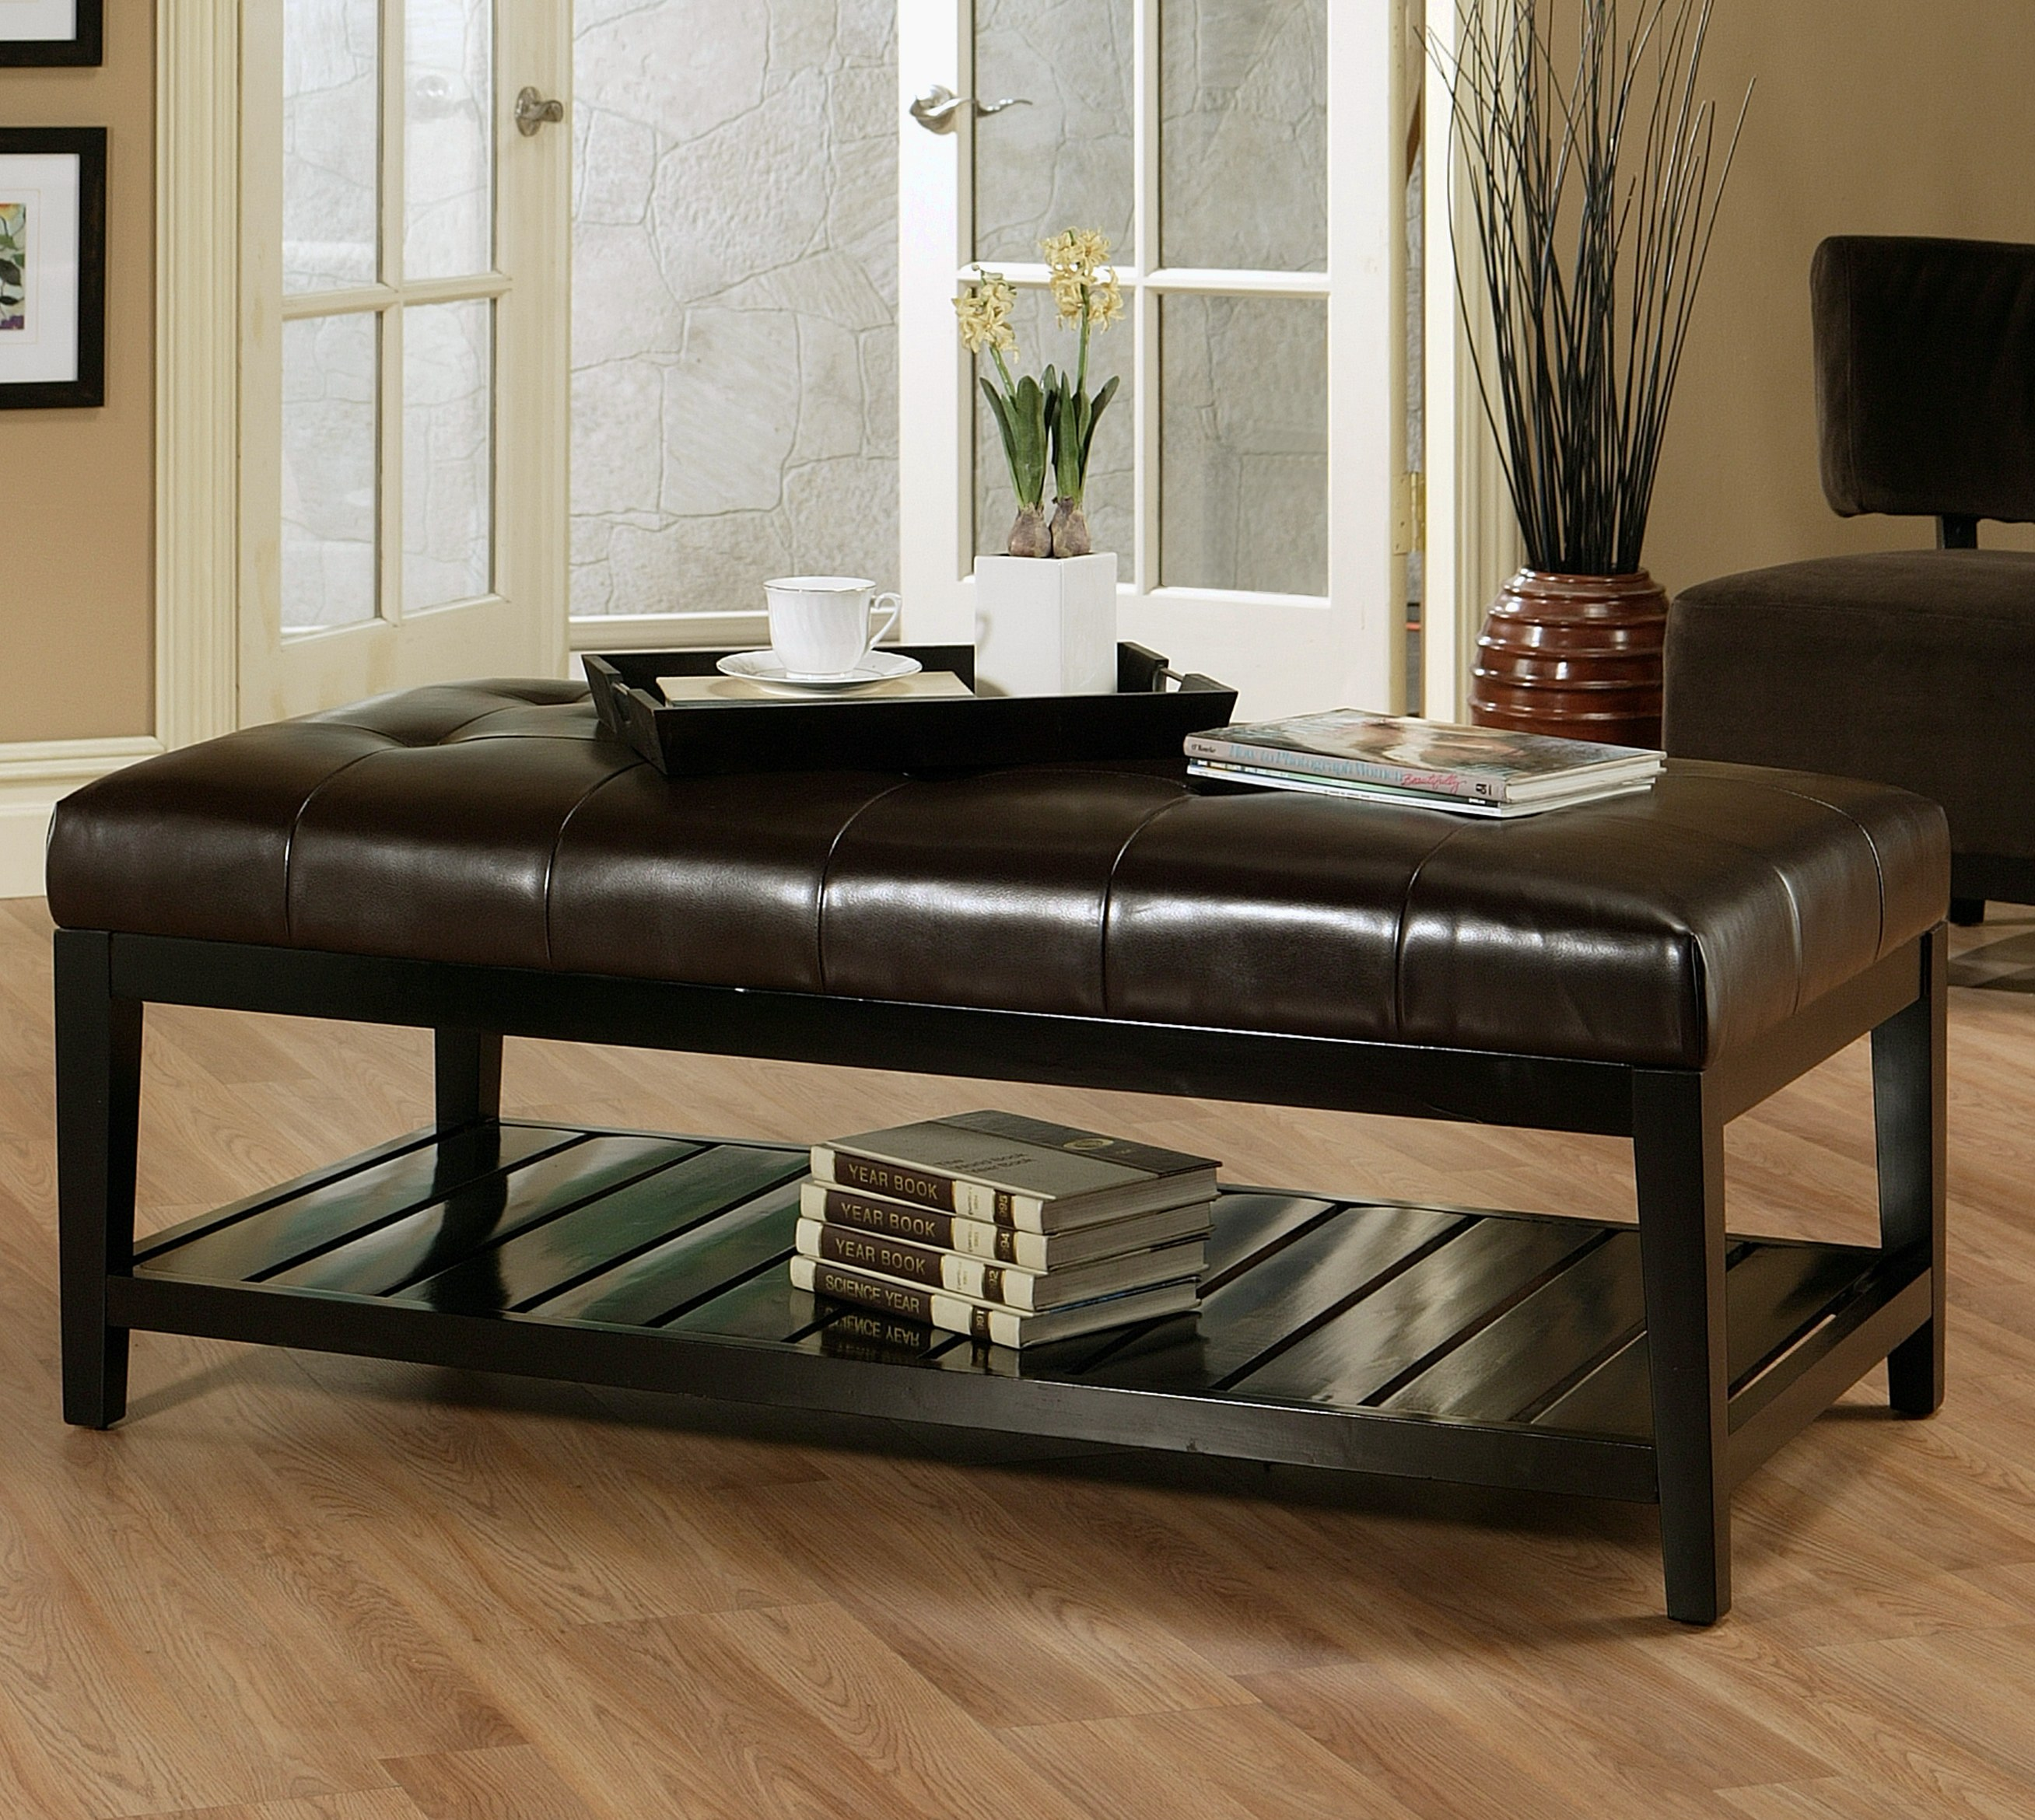 Manchester Tufted Leather Coffee Table By Abbyson Living Hs Ot 036 Brn